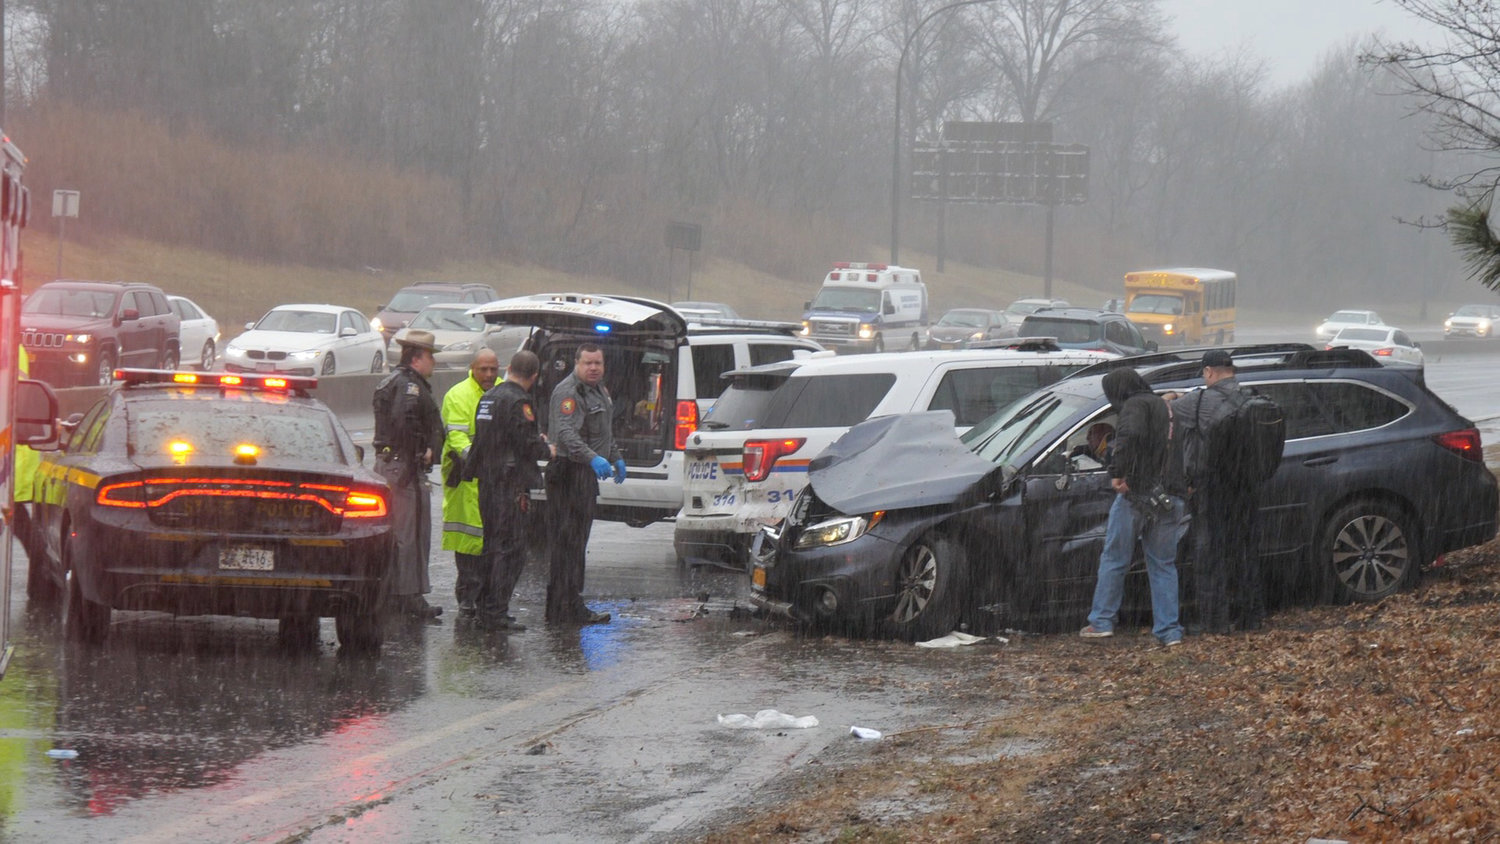 State Police ask in a news release that any witnesses to this collision contact the New York State Police headquarters.